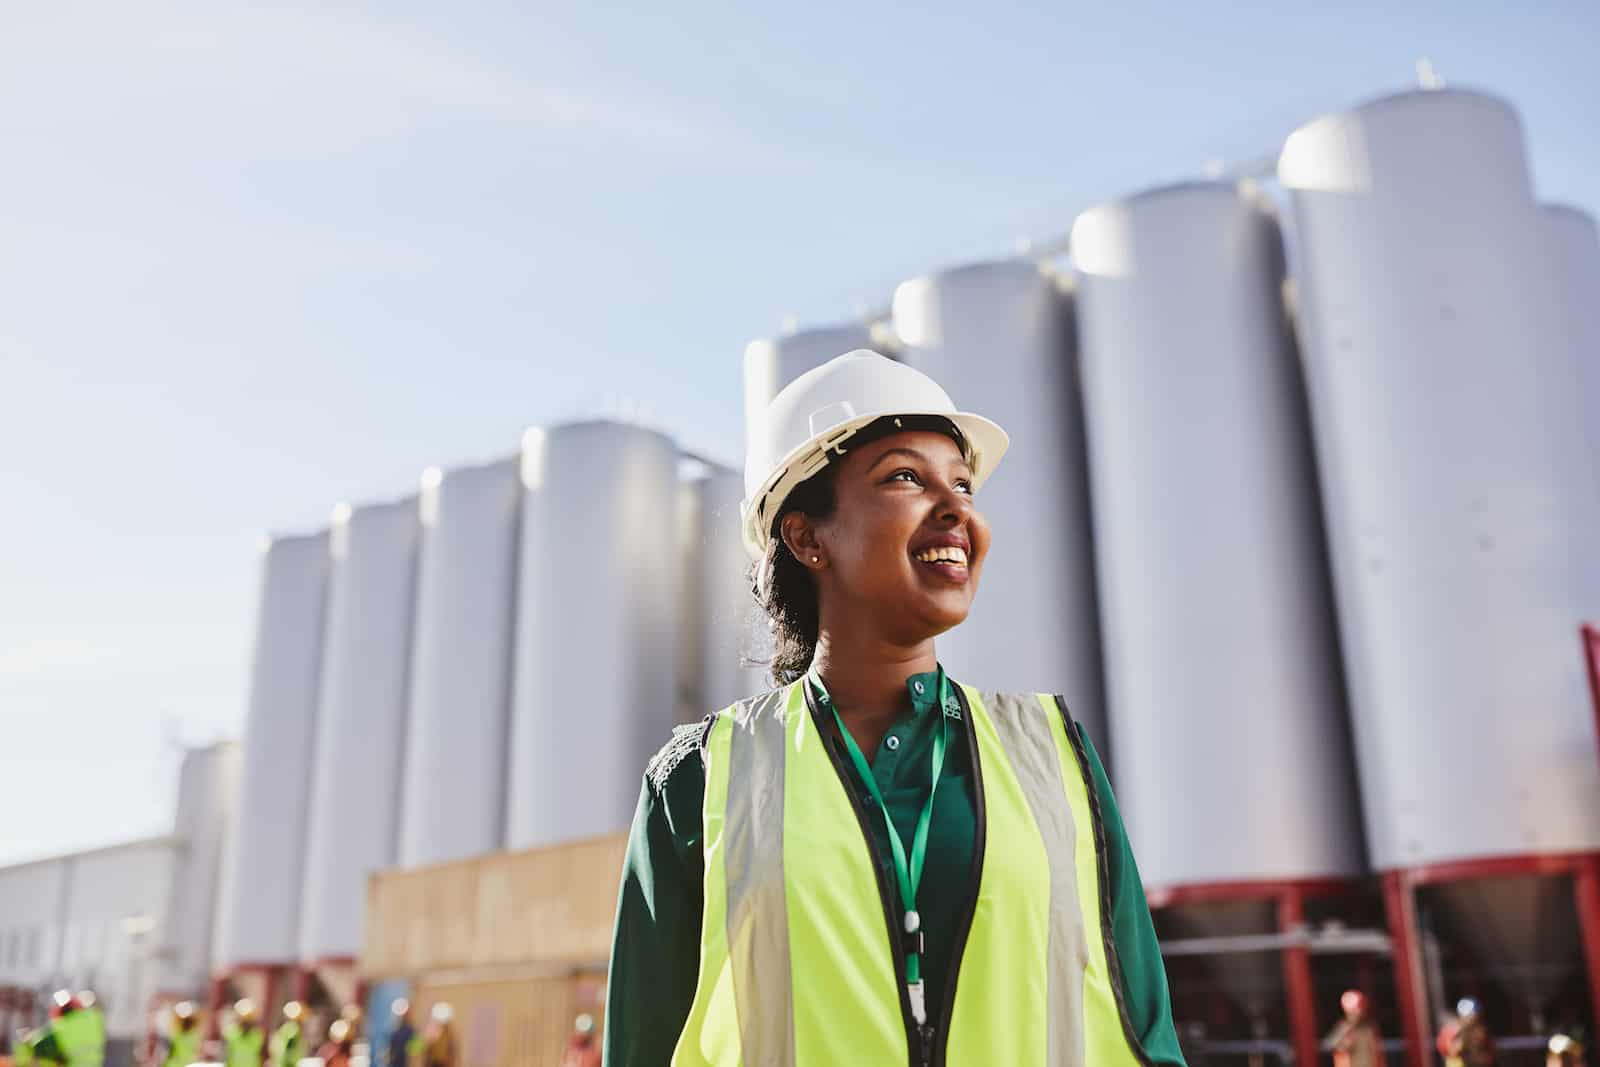 A woman in a yellow safety vest and hard hat stands in front of a manufacturing plant, looking up to the sky.